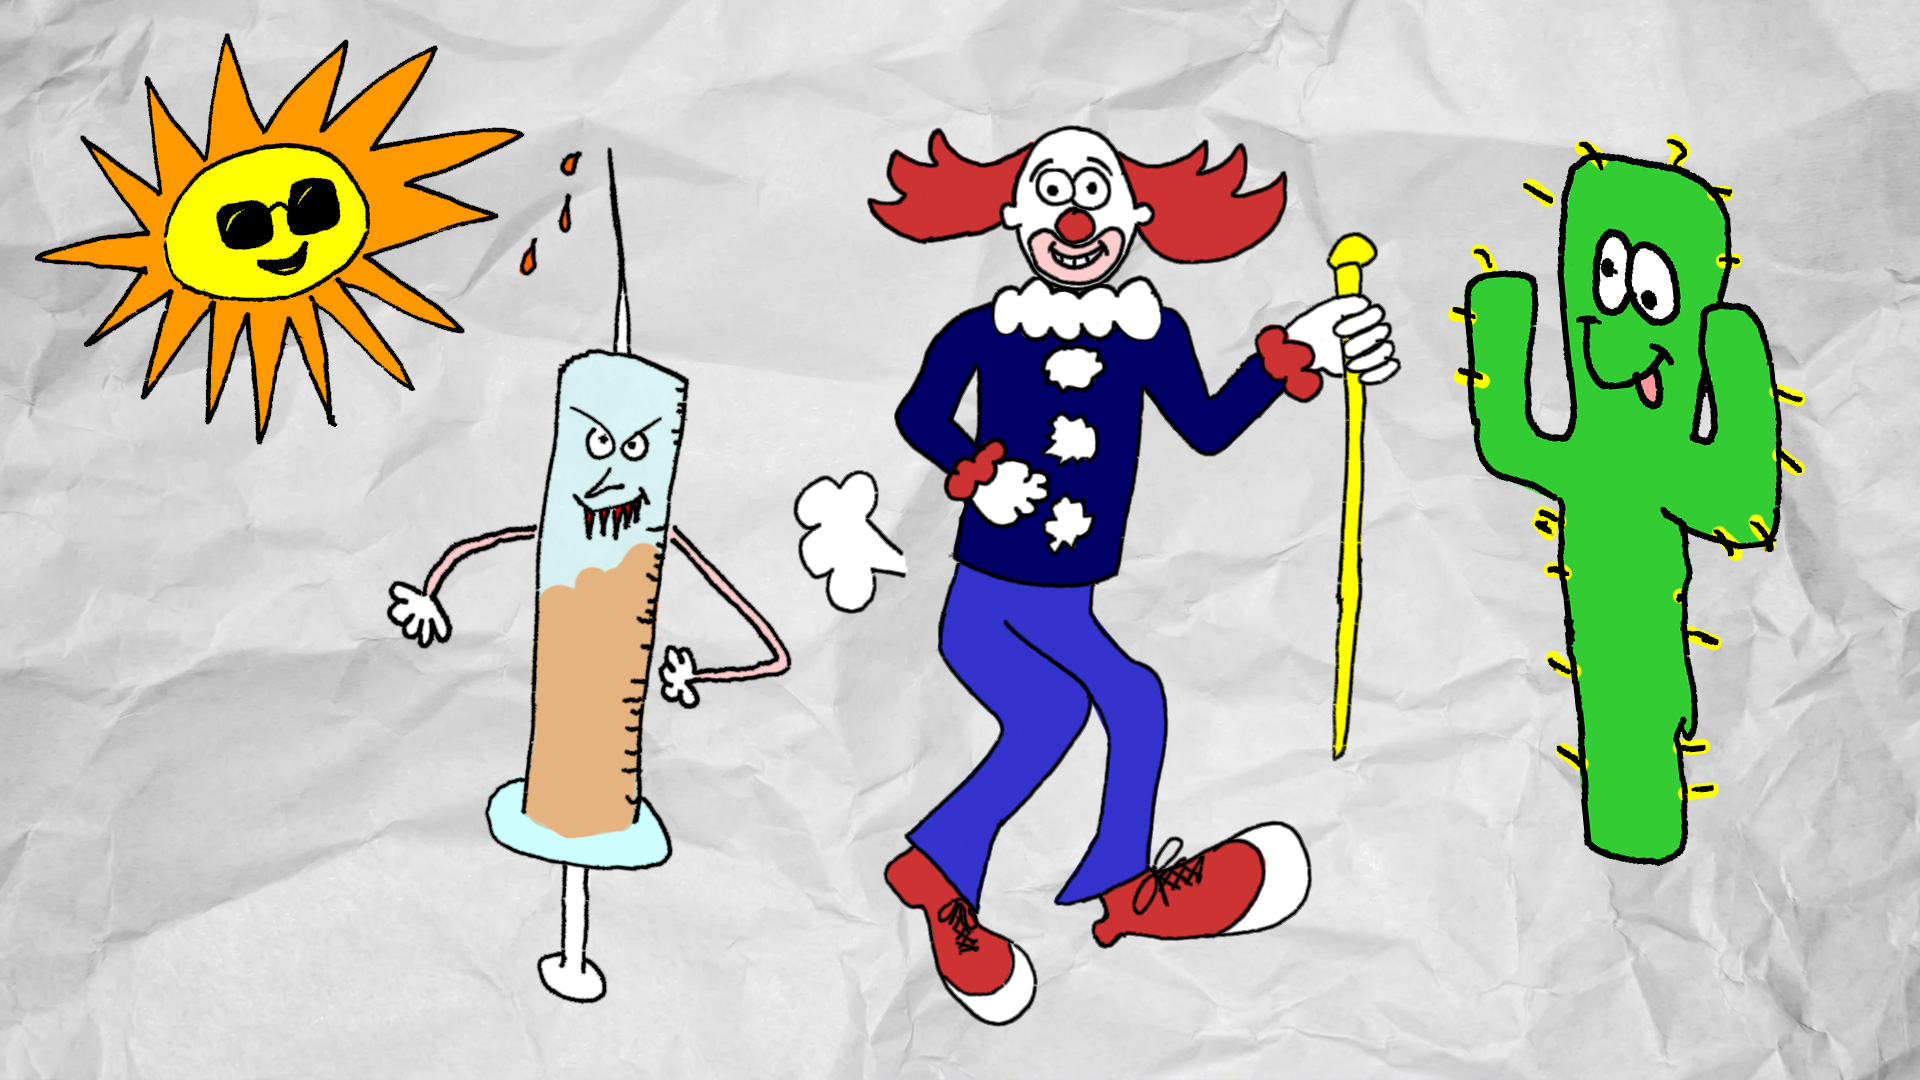 Nobunny - I Was On The Bozo Show - Separated and Colorized Characters for Animation 02